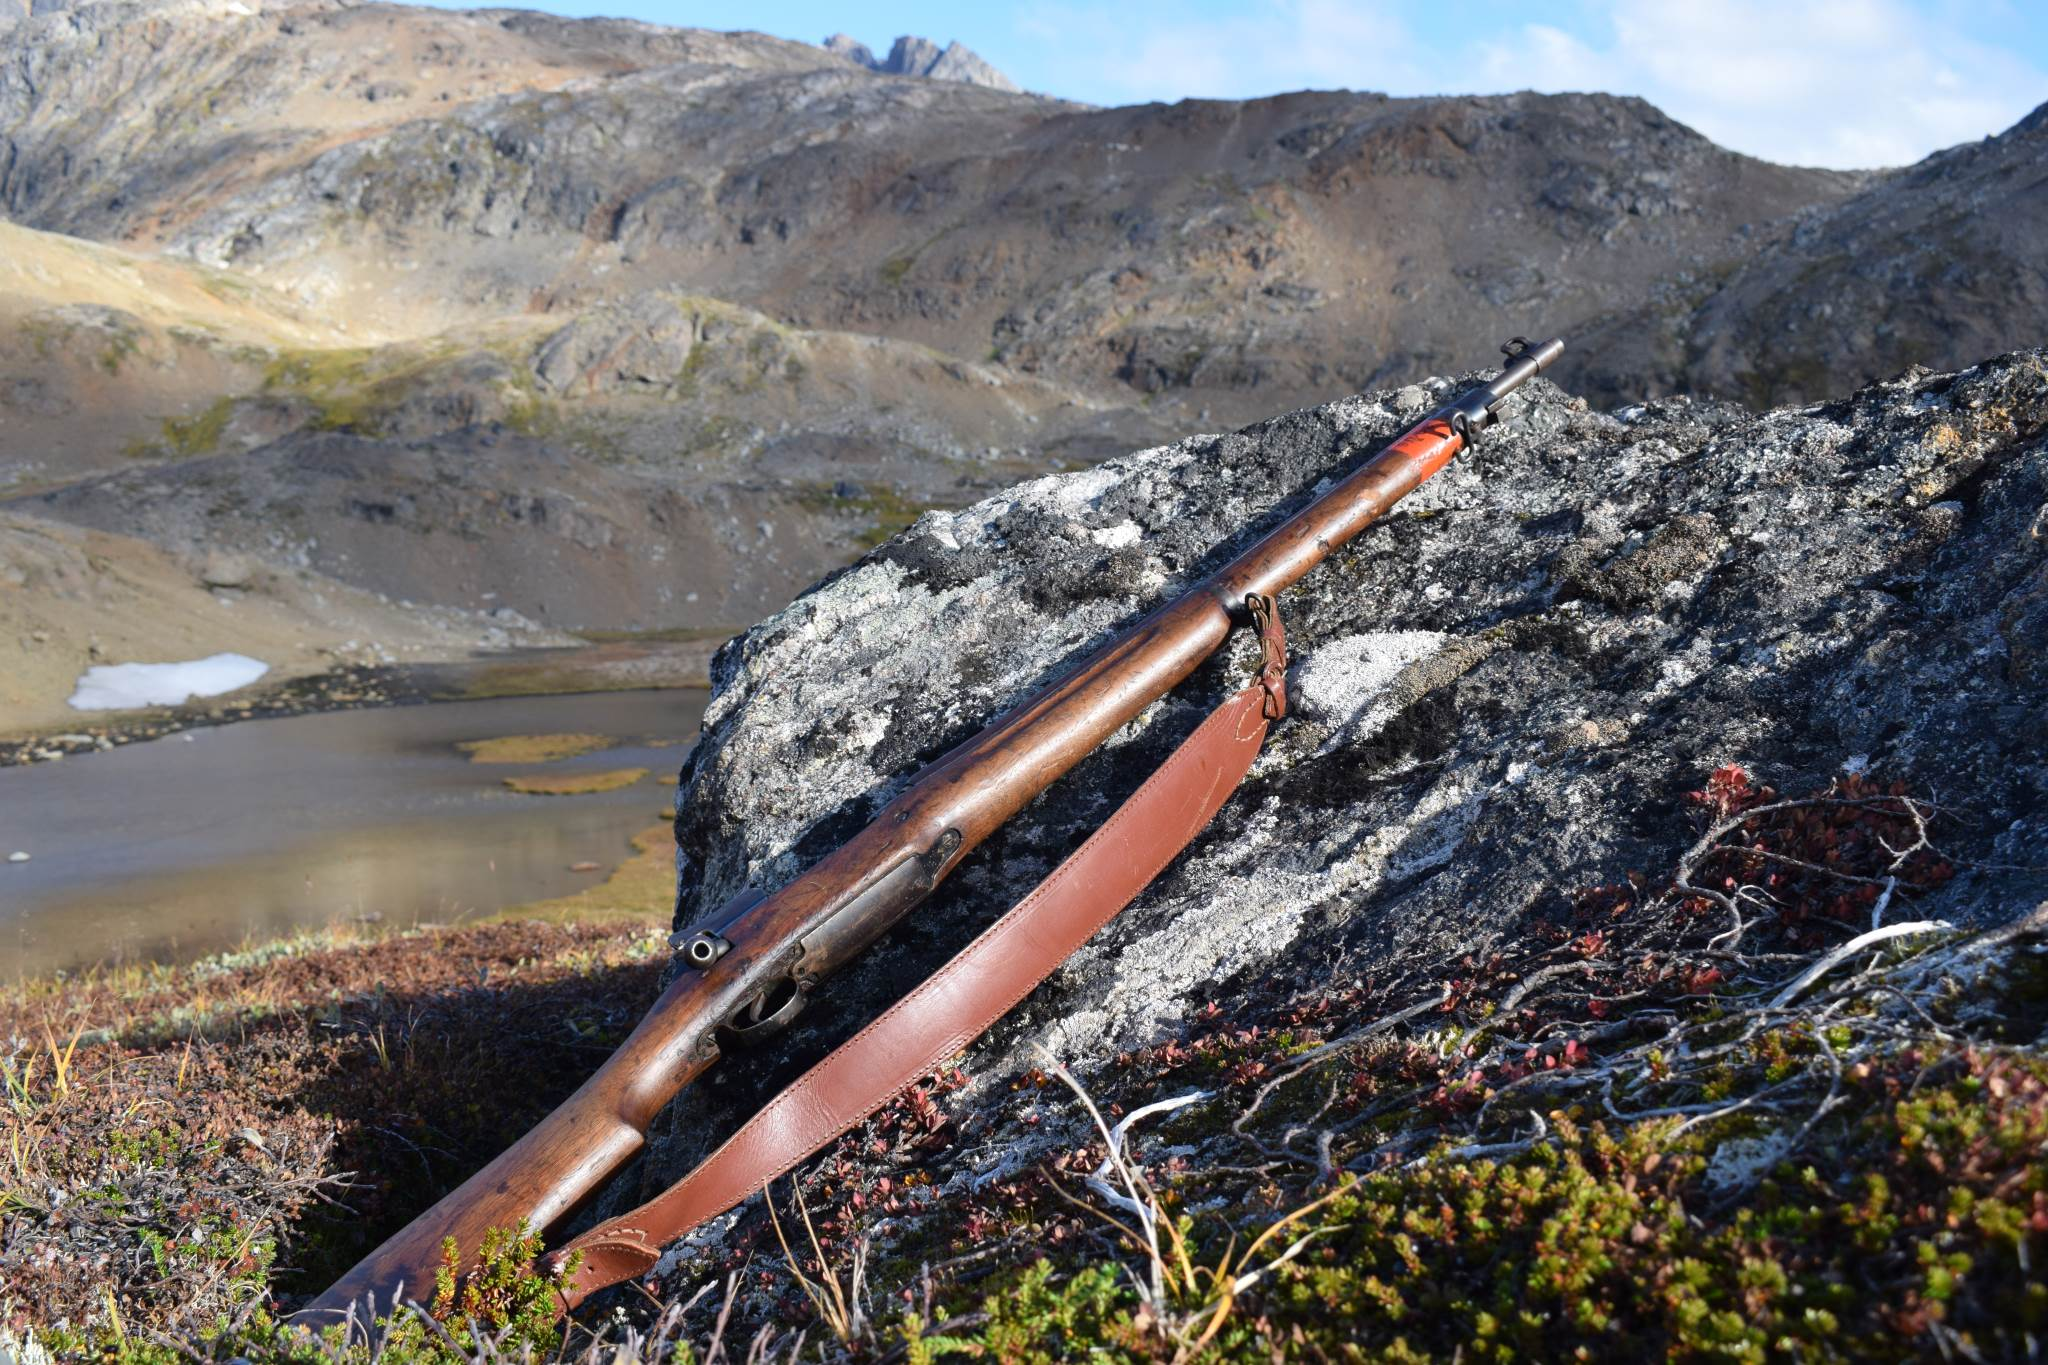 Old world war 2 rifle - used for polar bear protection